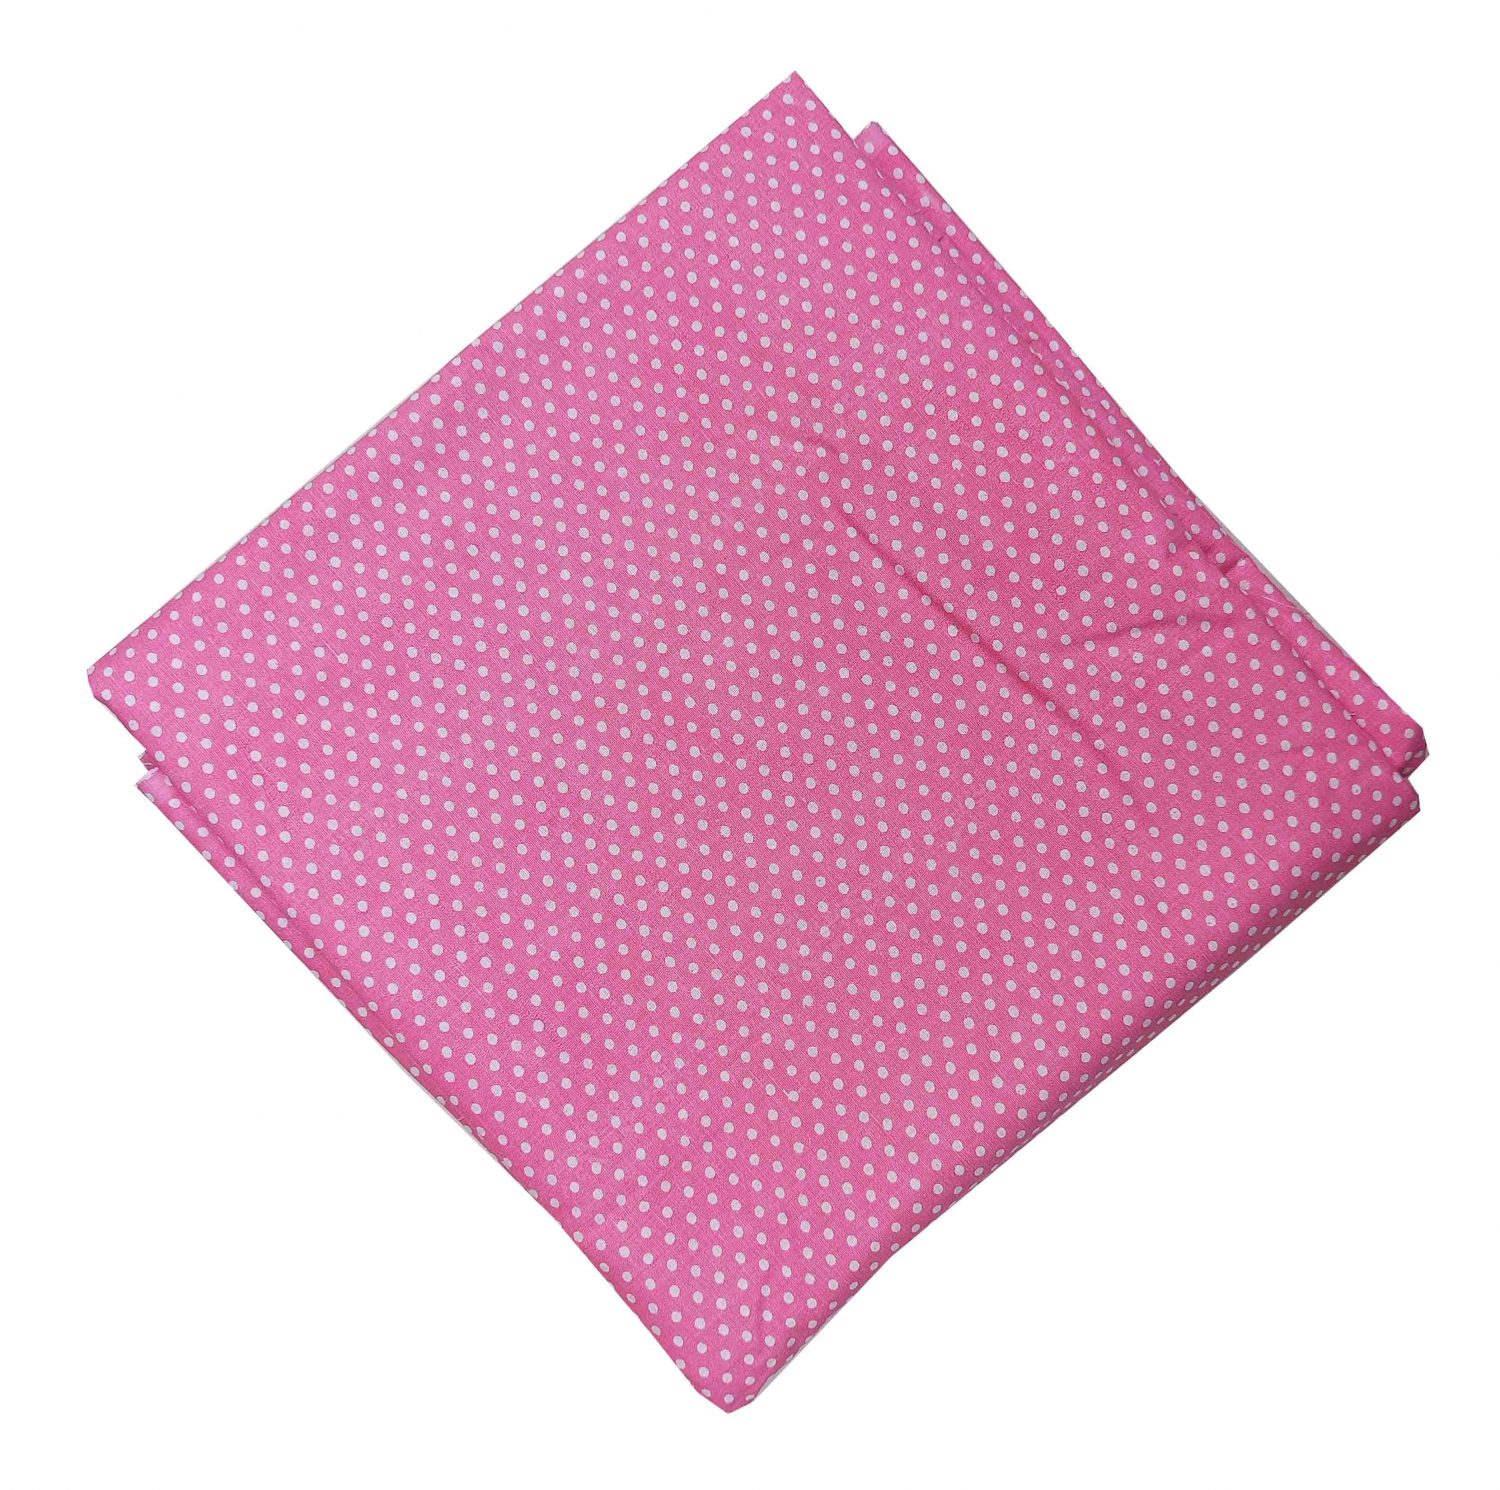 Baby Pink Polka Print Soft Skin Friendly Pure Cotton Fabric PC527 1